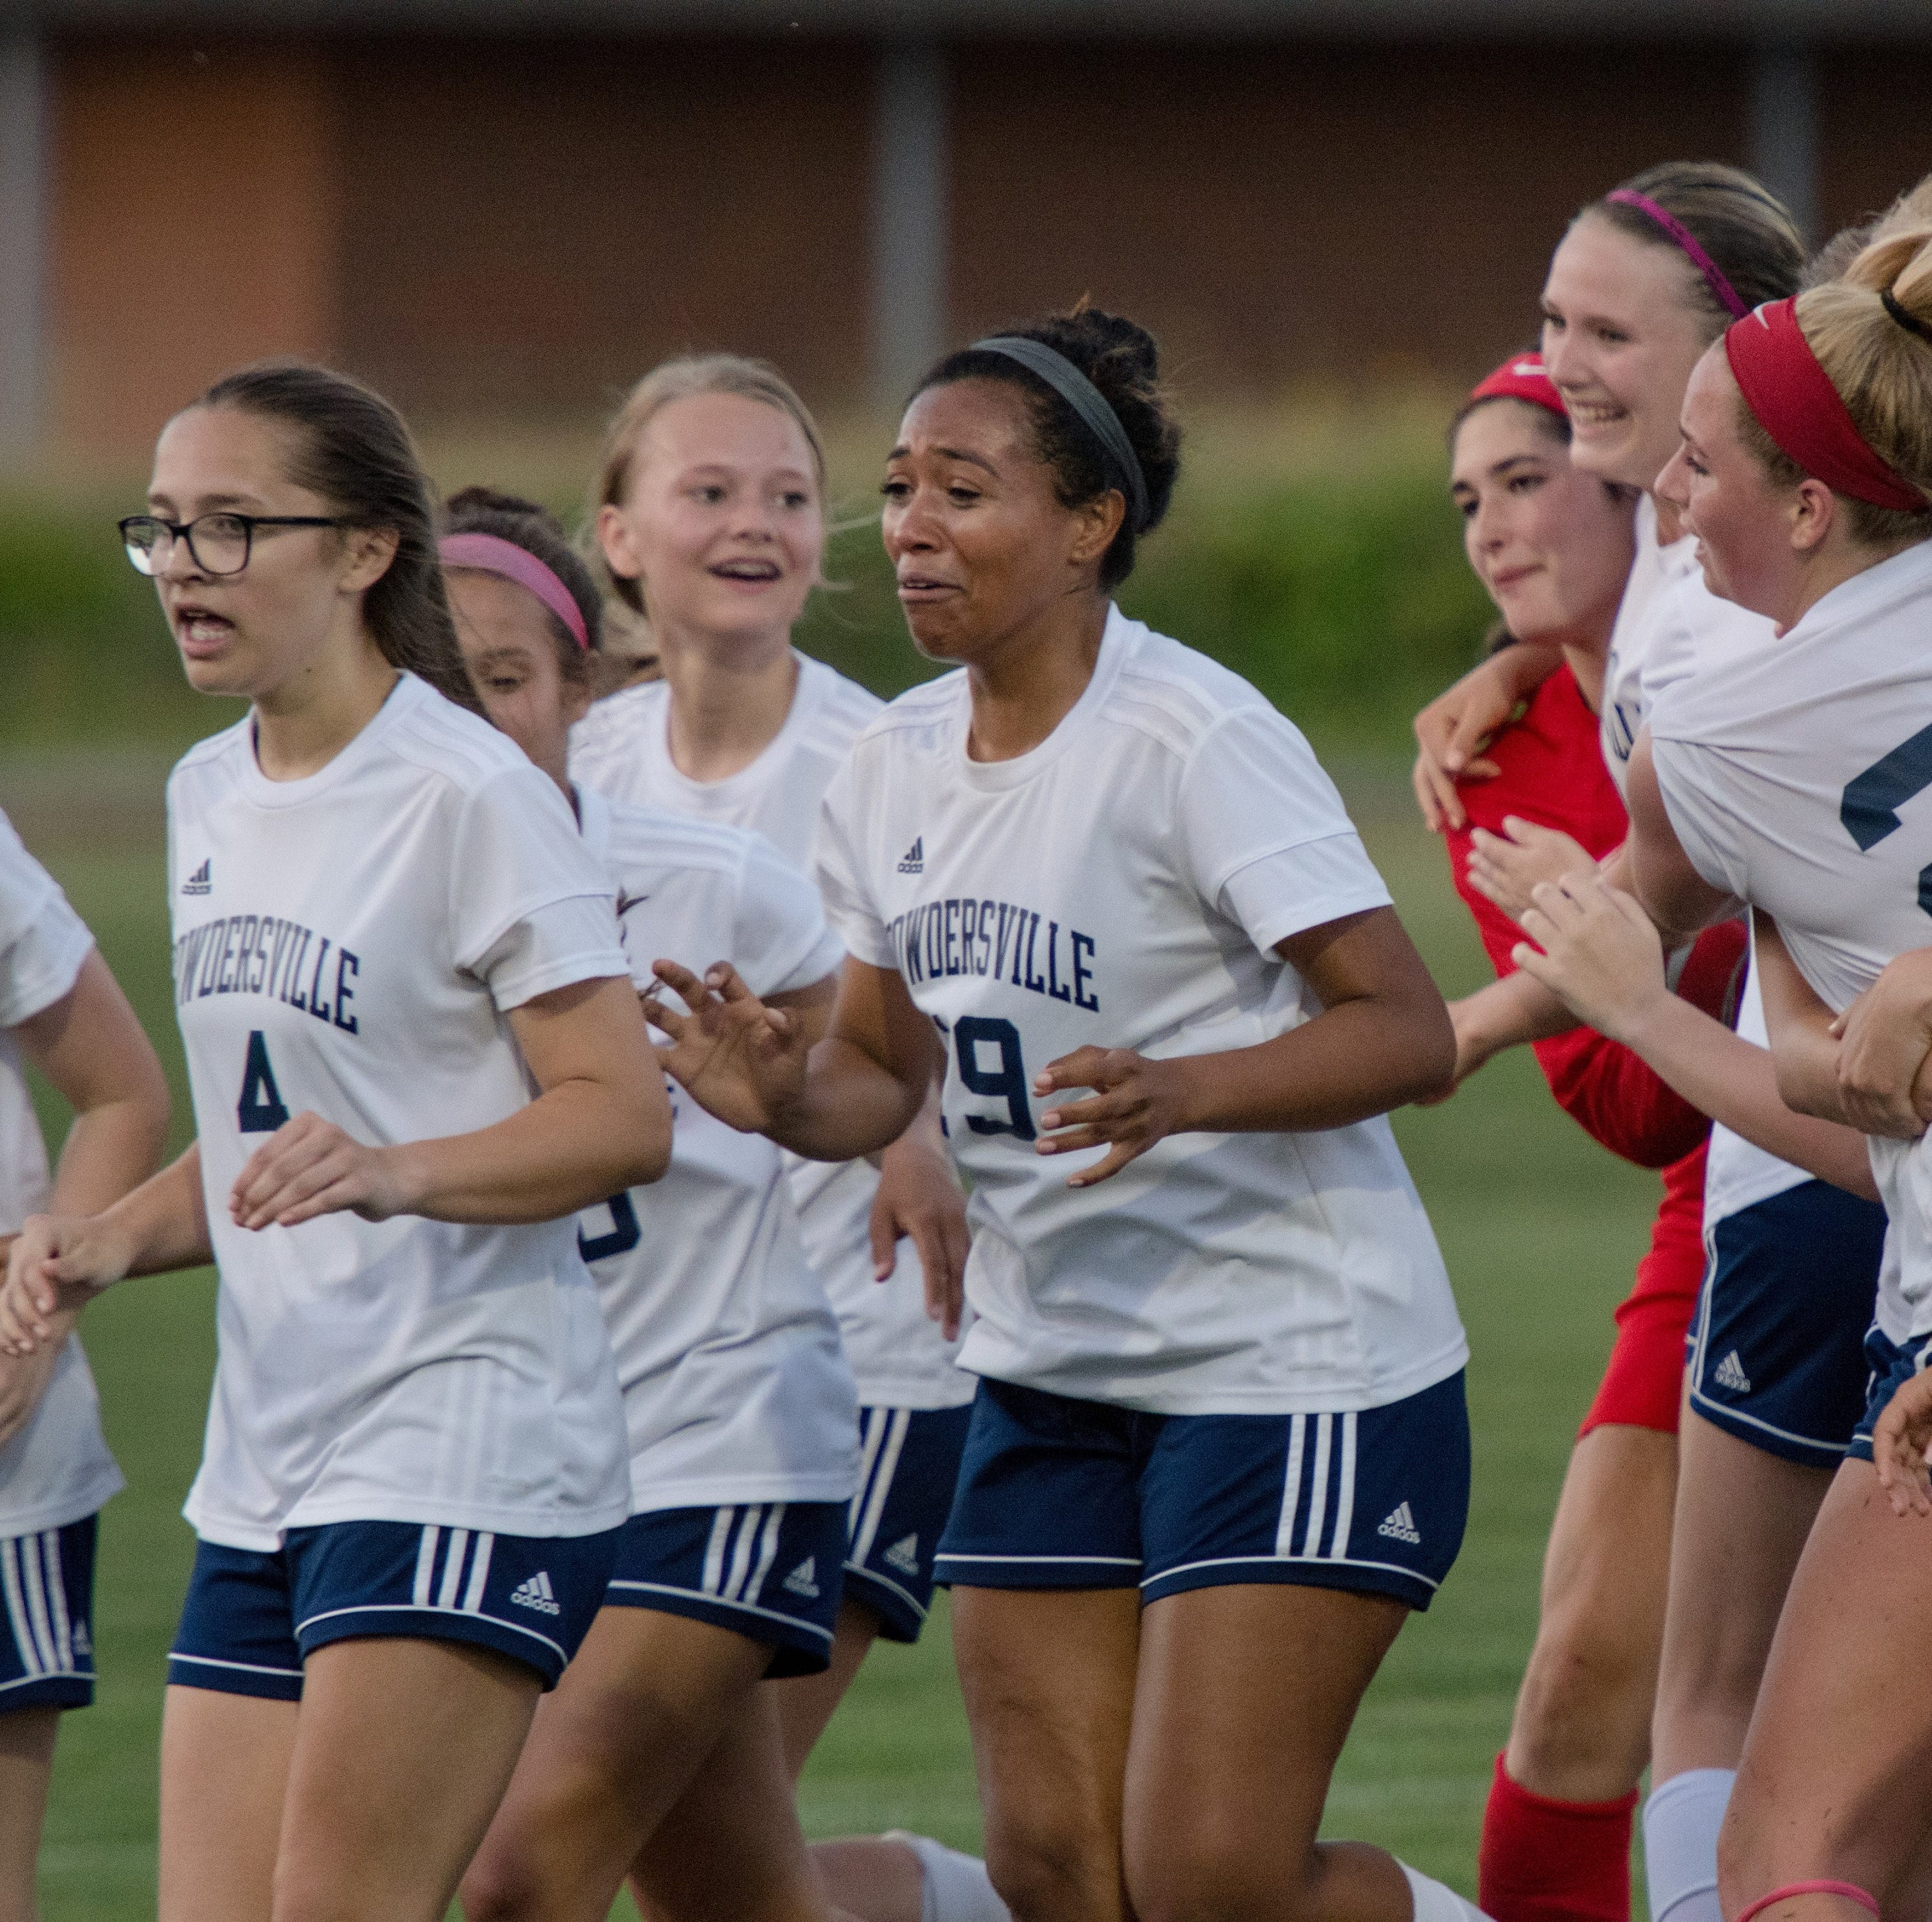 Powdersville girls soccer's historic season continues into SC state championship final